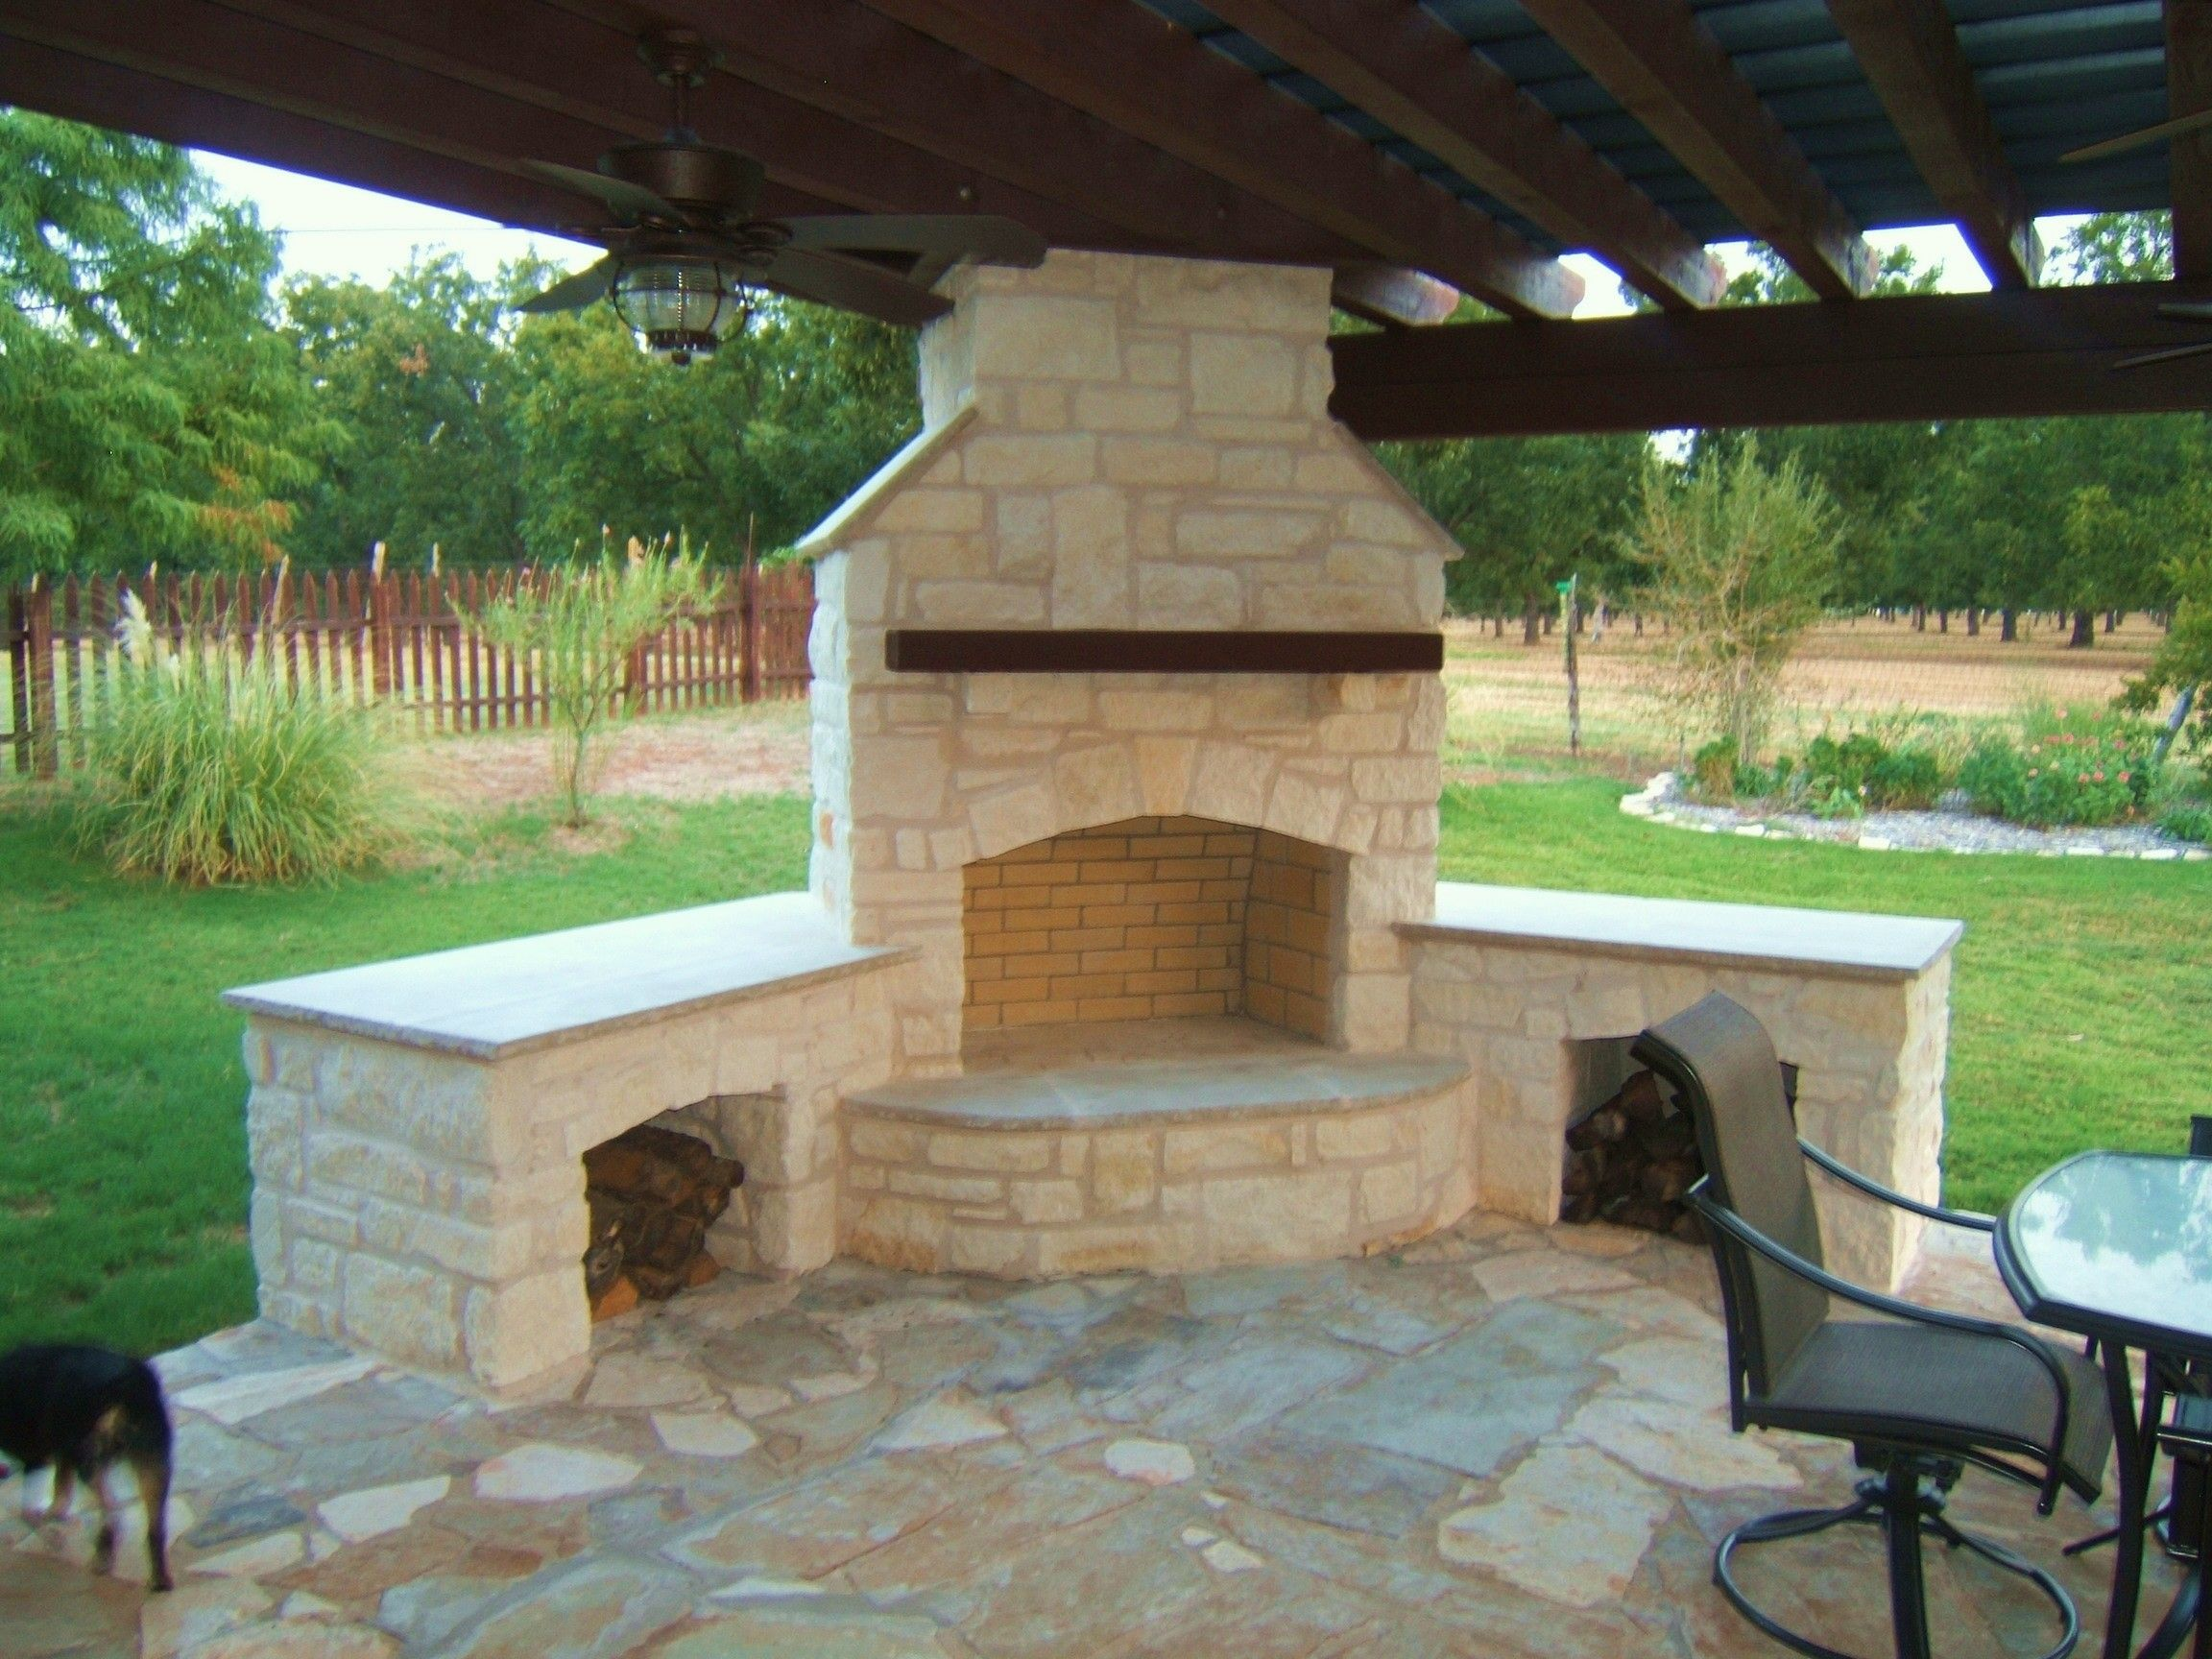 outside kitchen with grill and stone corner fireplace under the